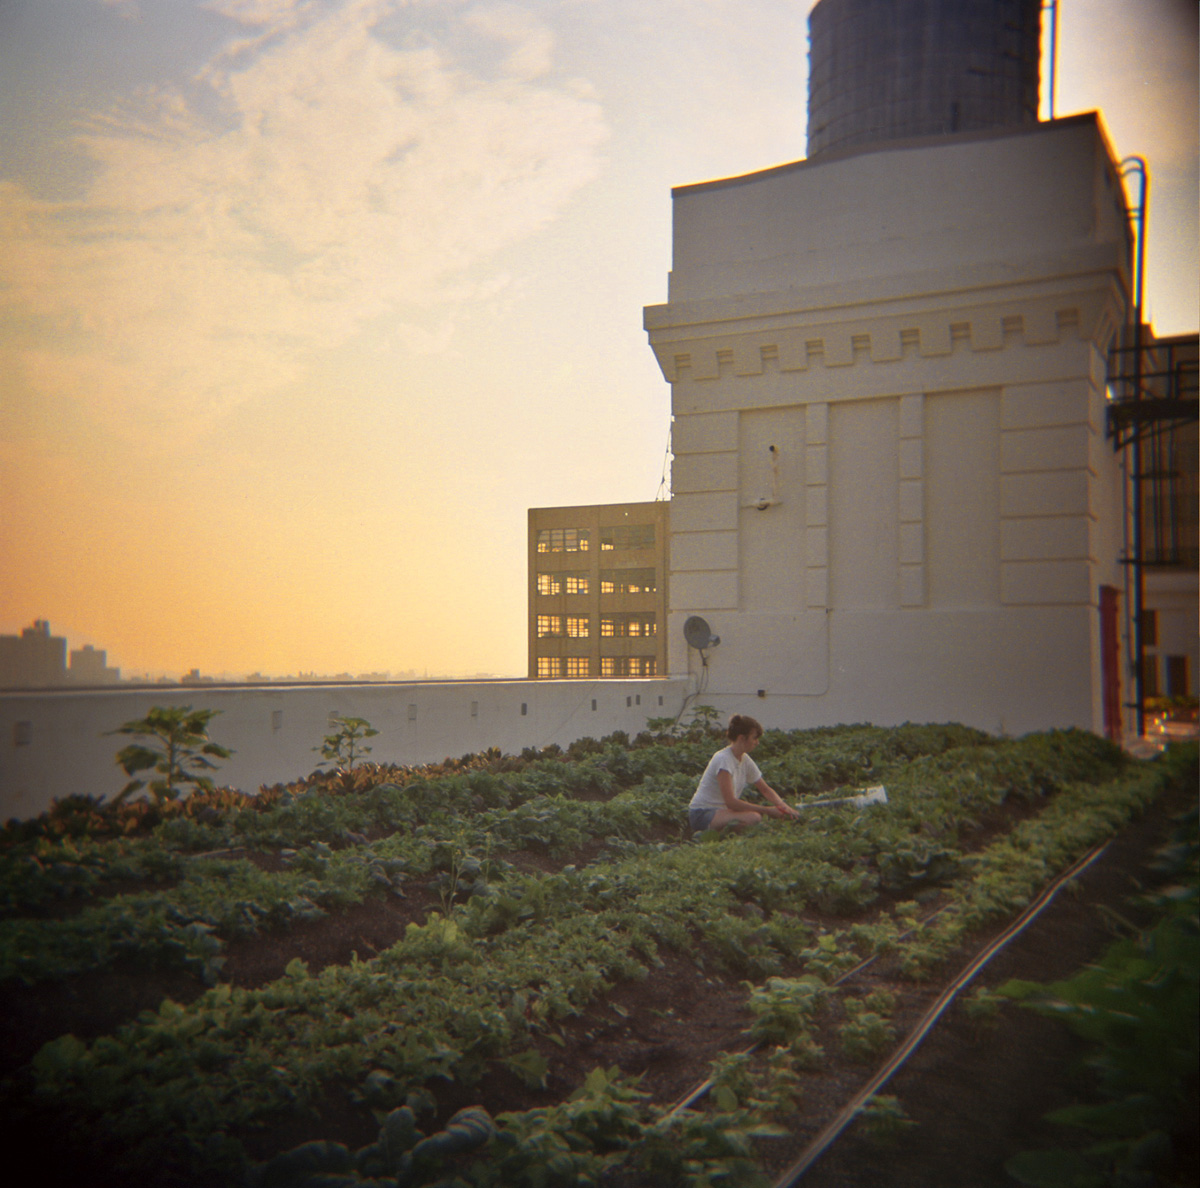 Brooklyn Grange Rooftop Farm, Brooklyn Navy Yard, Clinton Hill, Brooklyn, 2012.